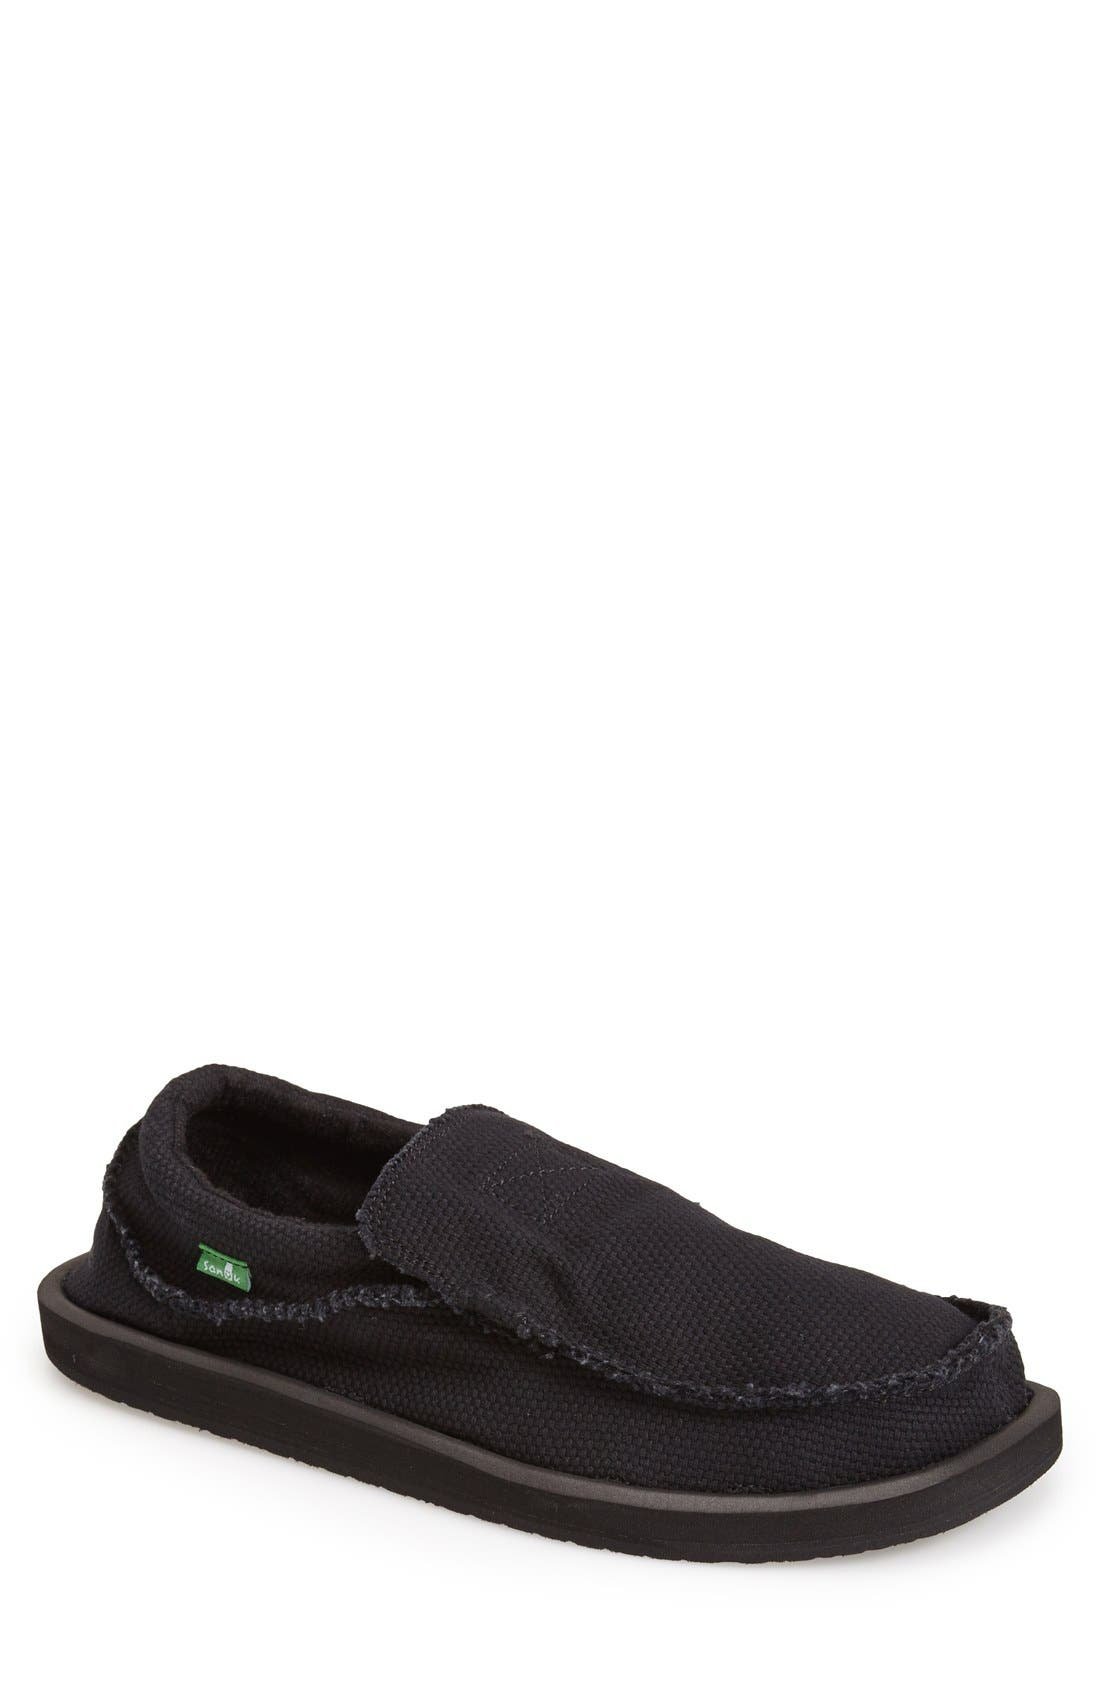 Main Image - Sanuk 'Chiba' Slip-On (Men)